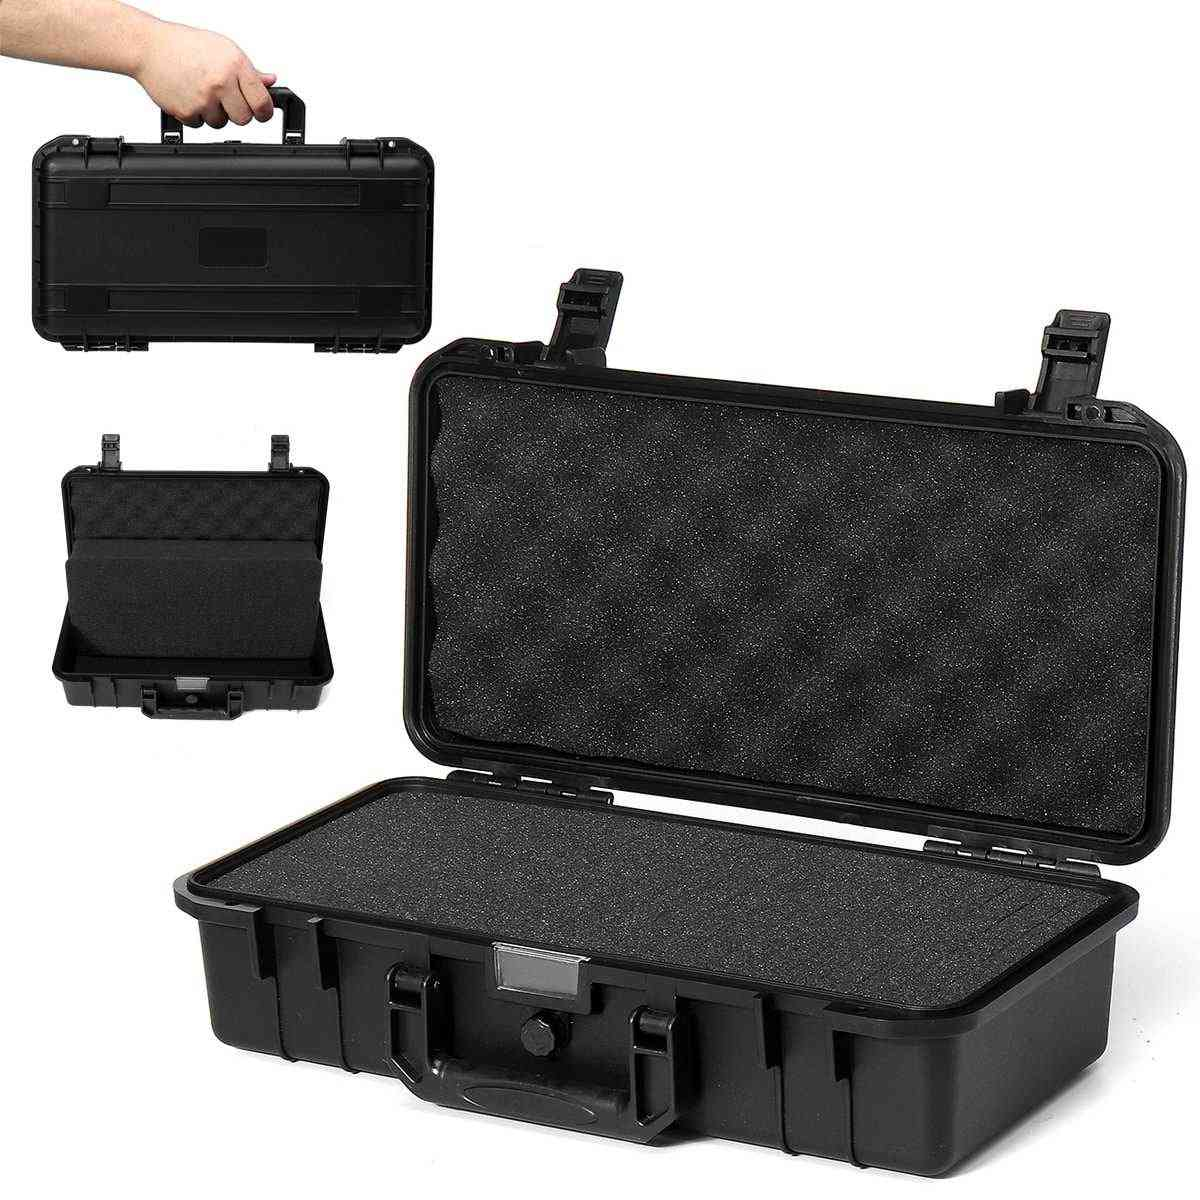 Protective Safety Instrument Waterproof Shockproof Toolbox With Sponge